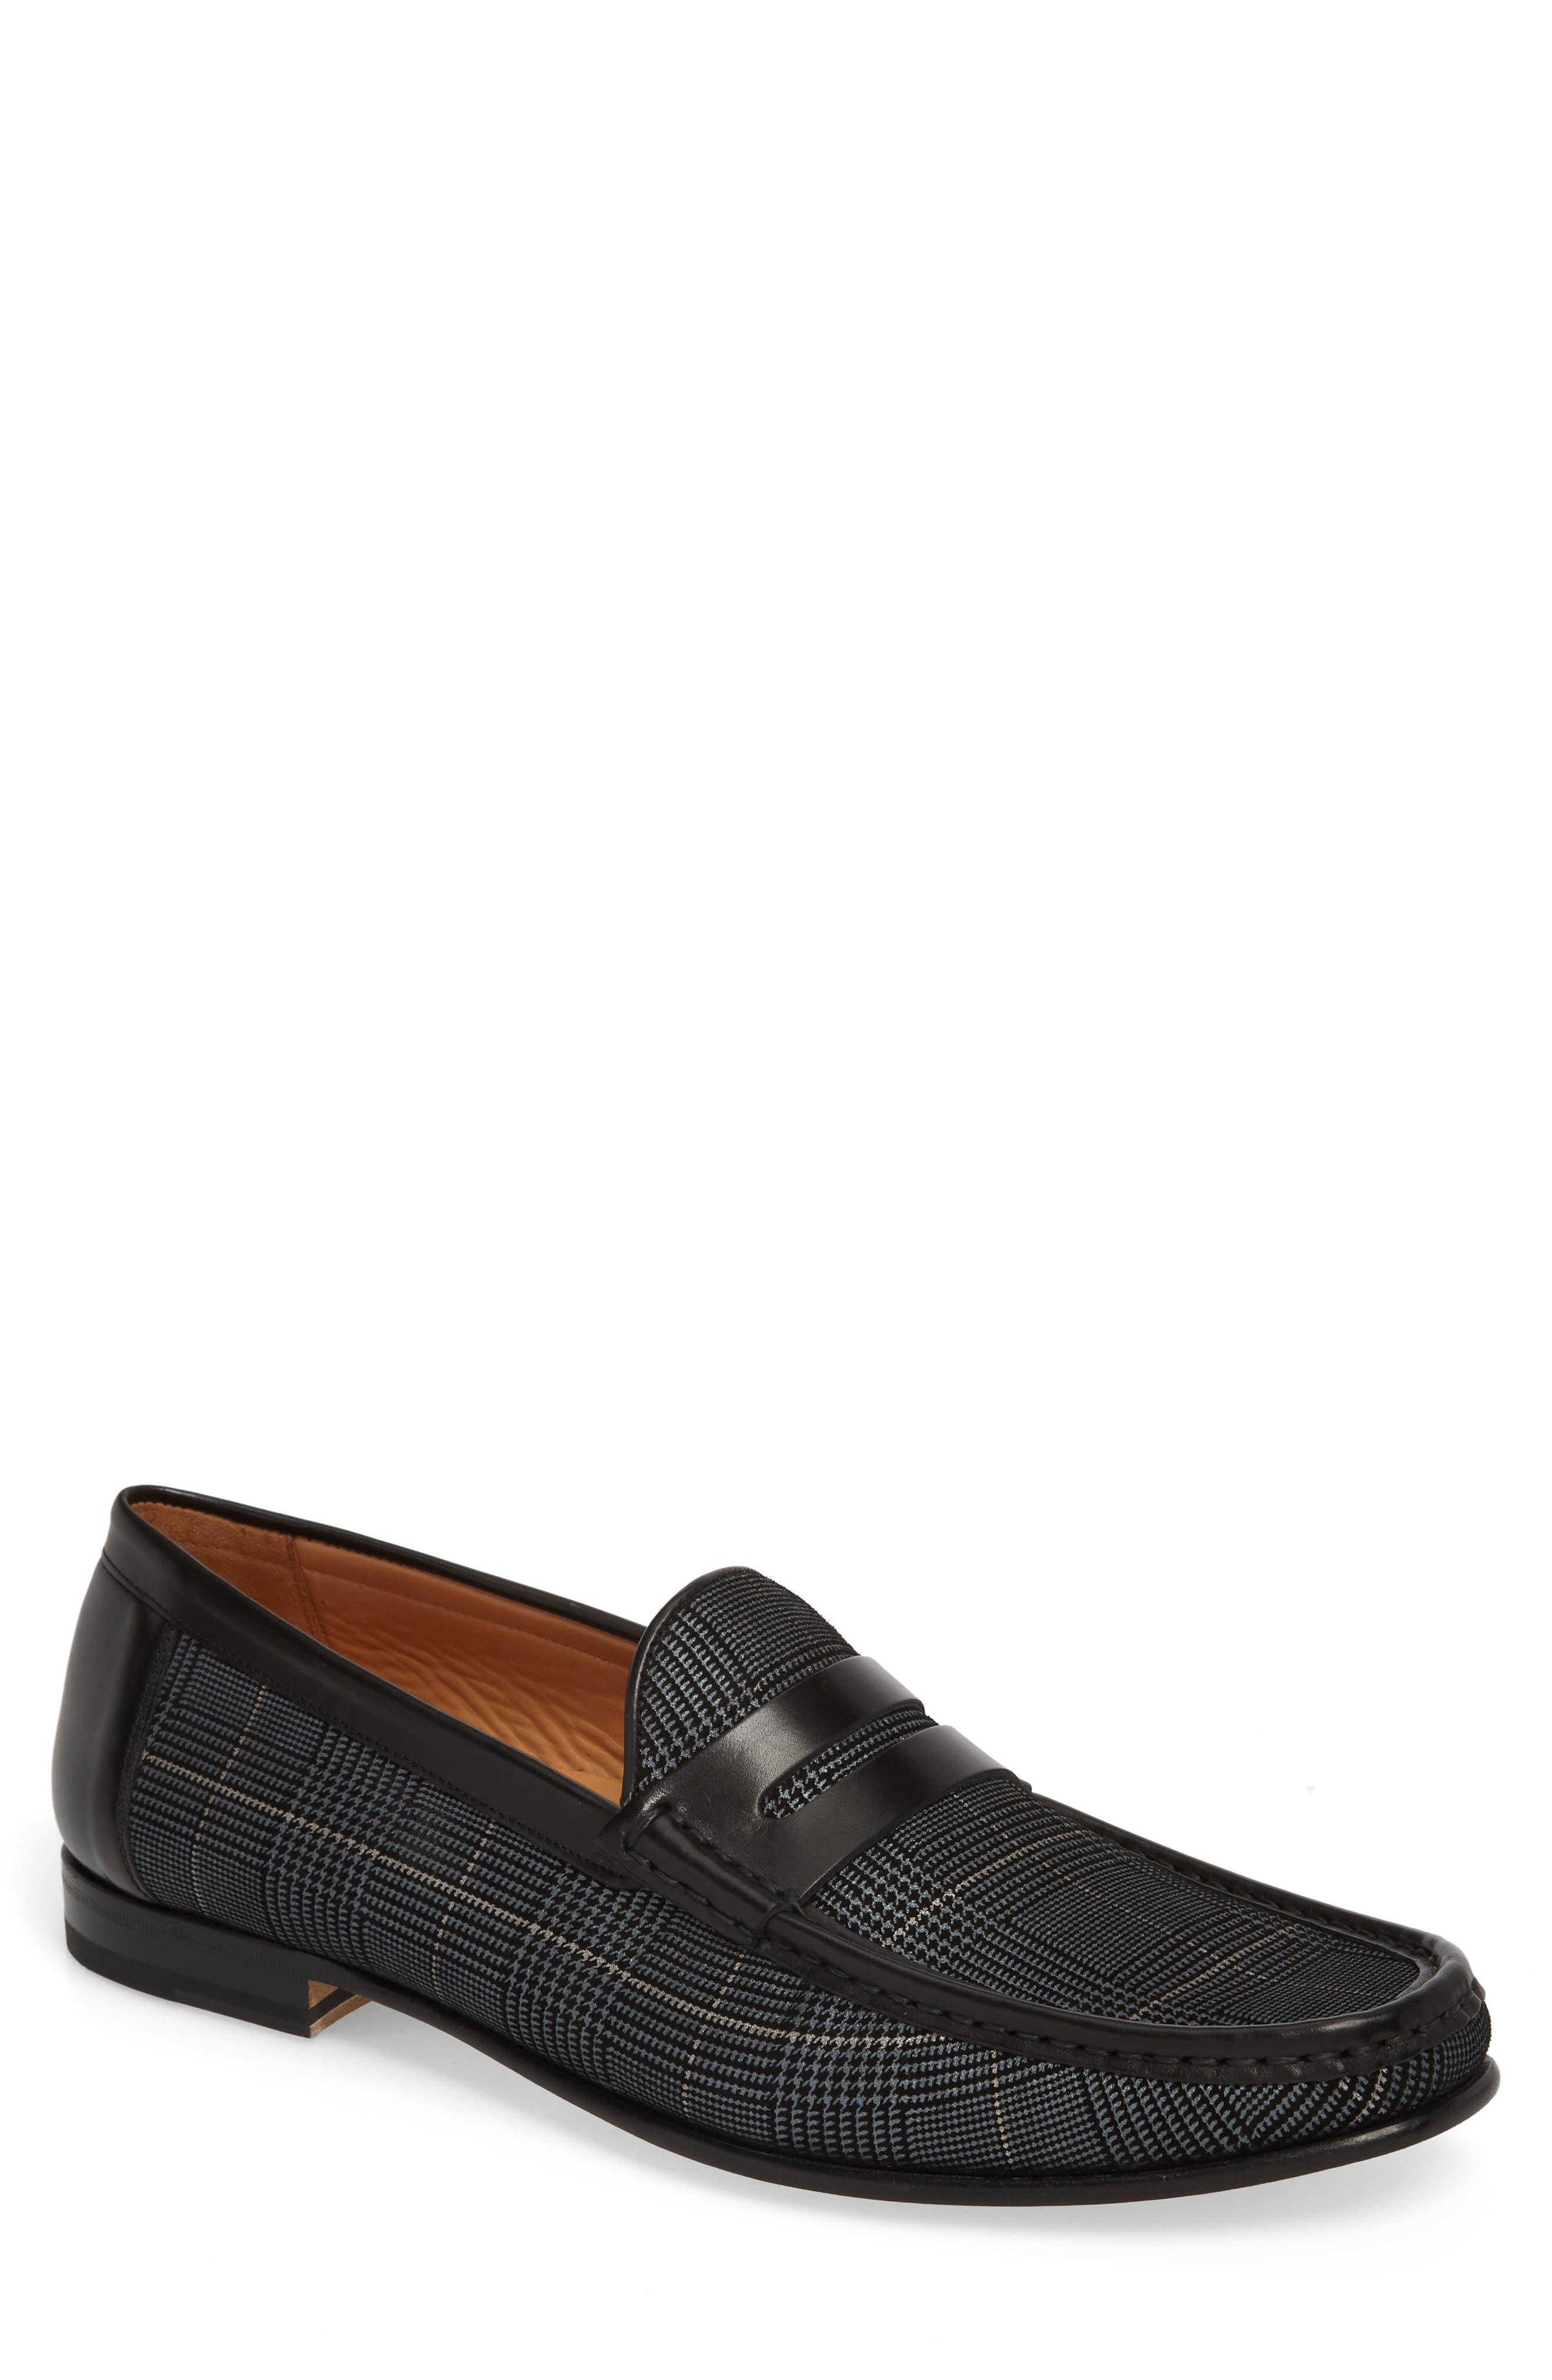 Lares I Houndstooth Penny Loafer,                             Main thumbnail 1, color,                             BLACK SUEDE/ LEATHER